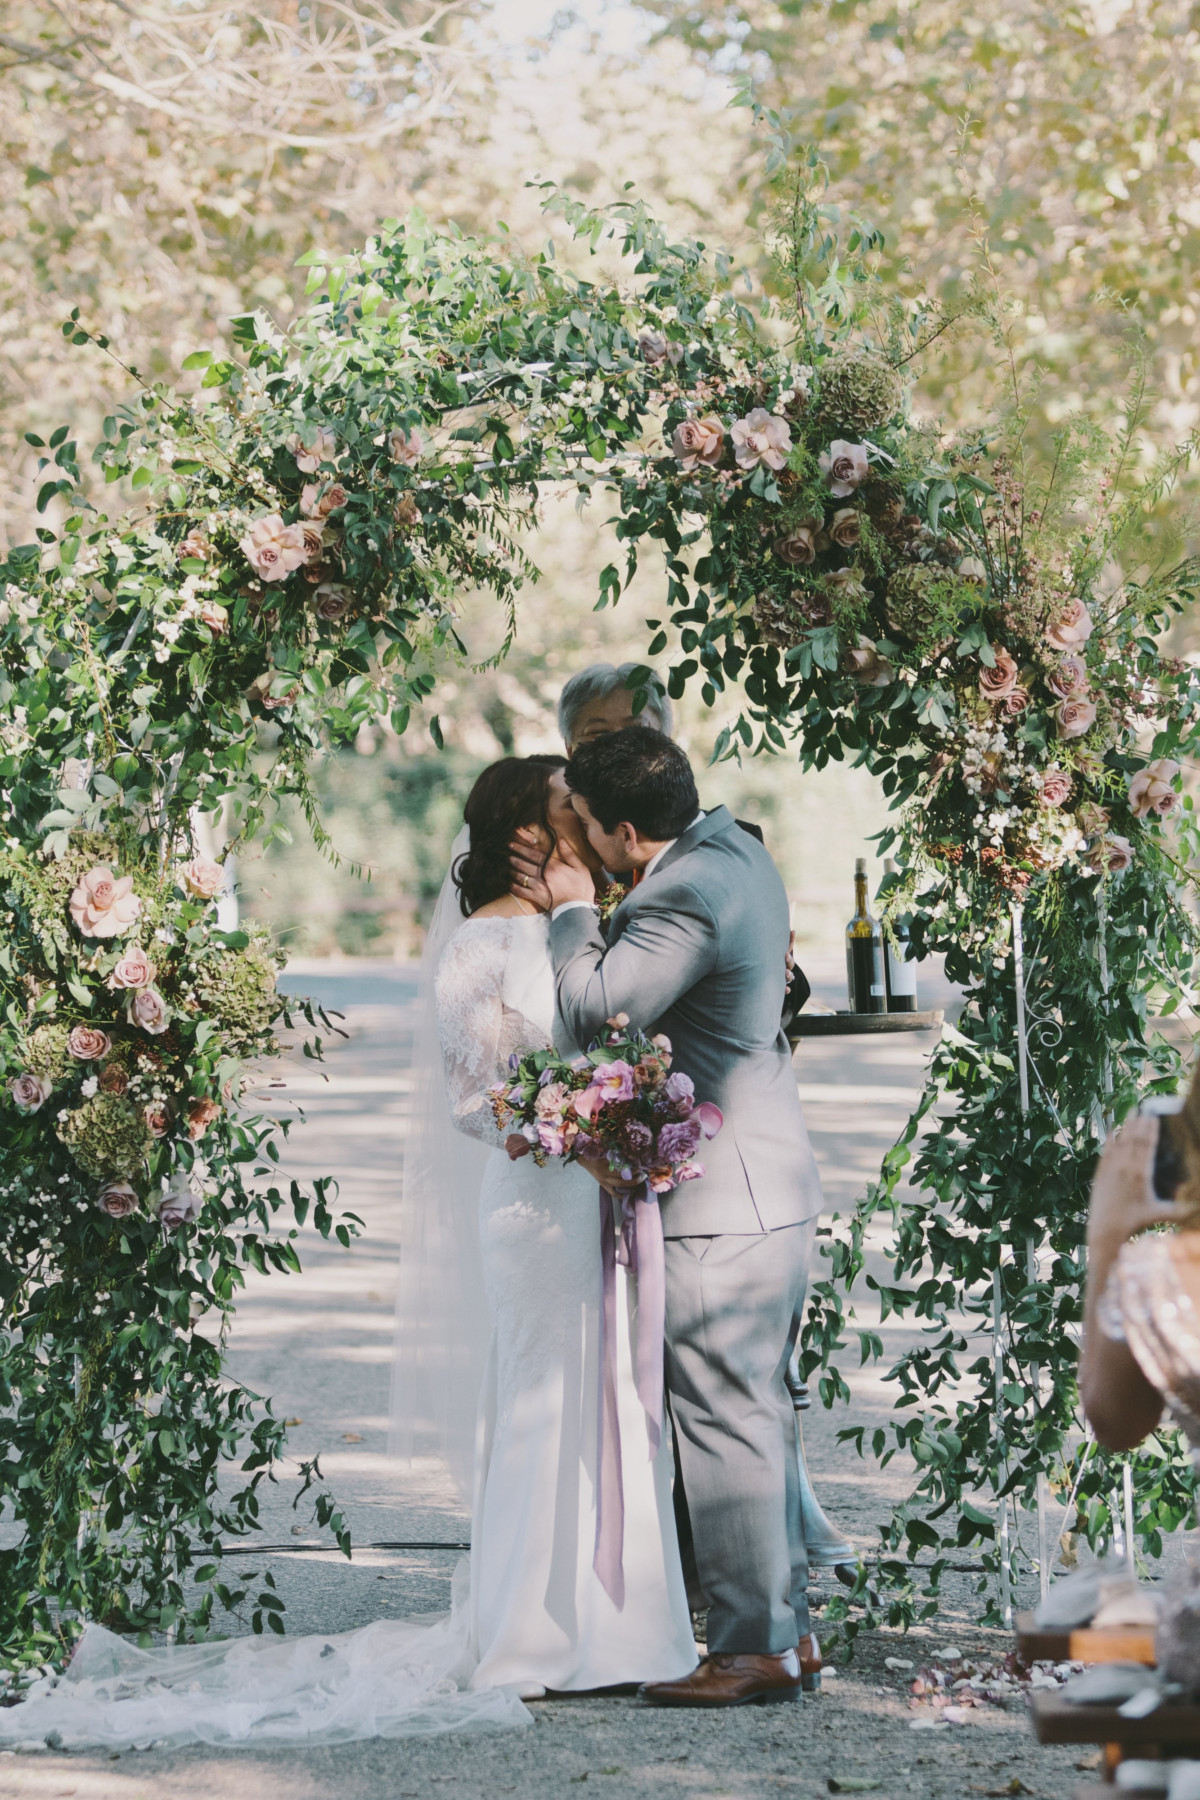 View More: http://haileygolich.pass.us/gomezwedding16